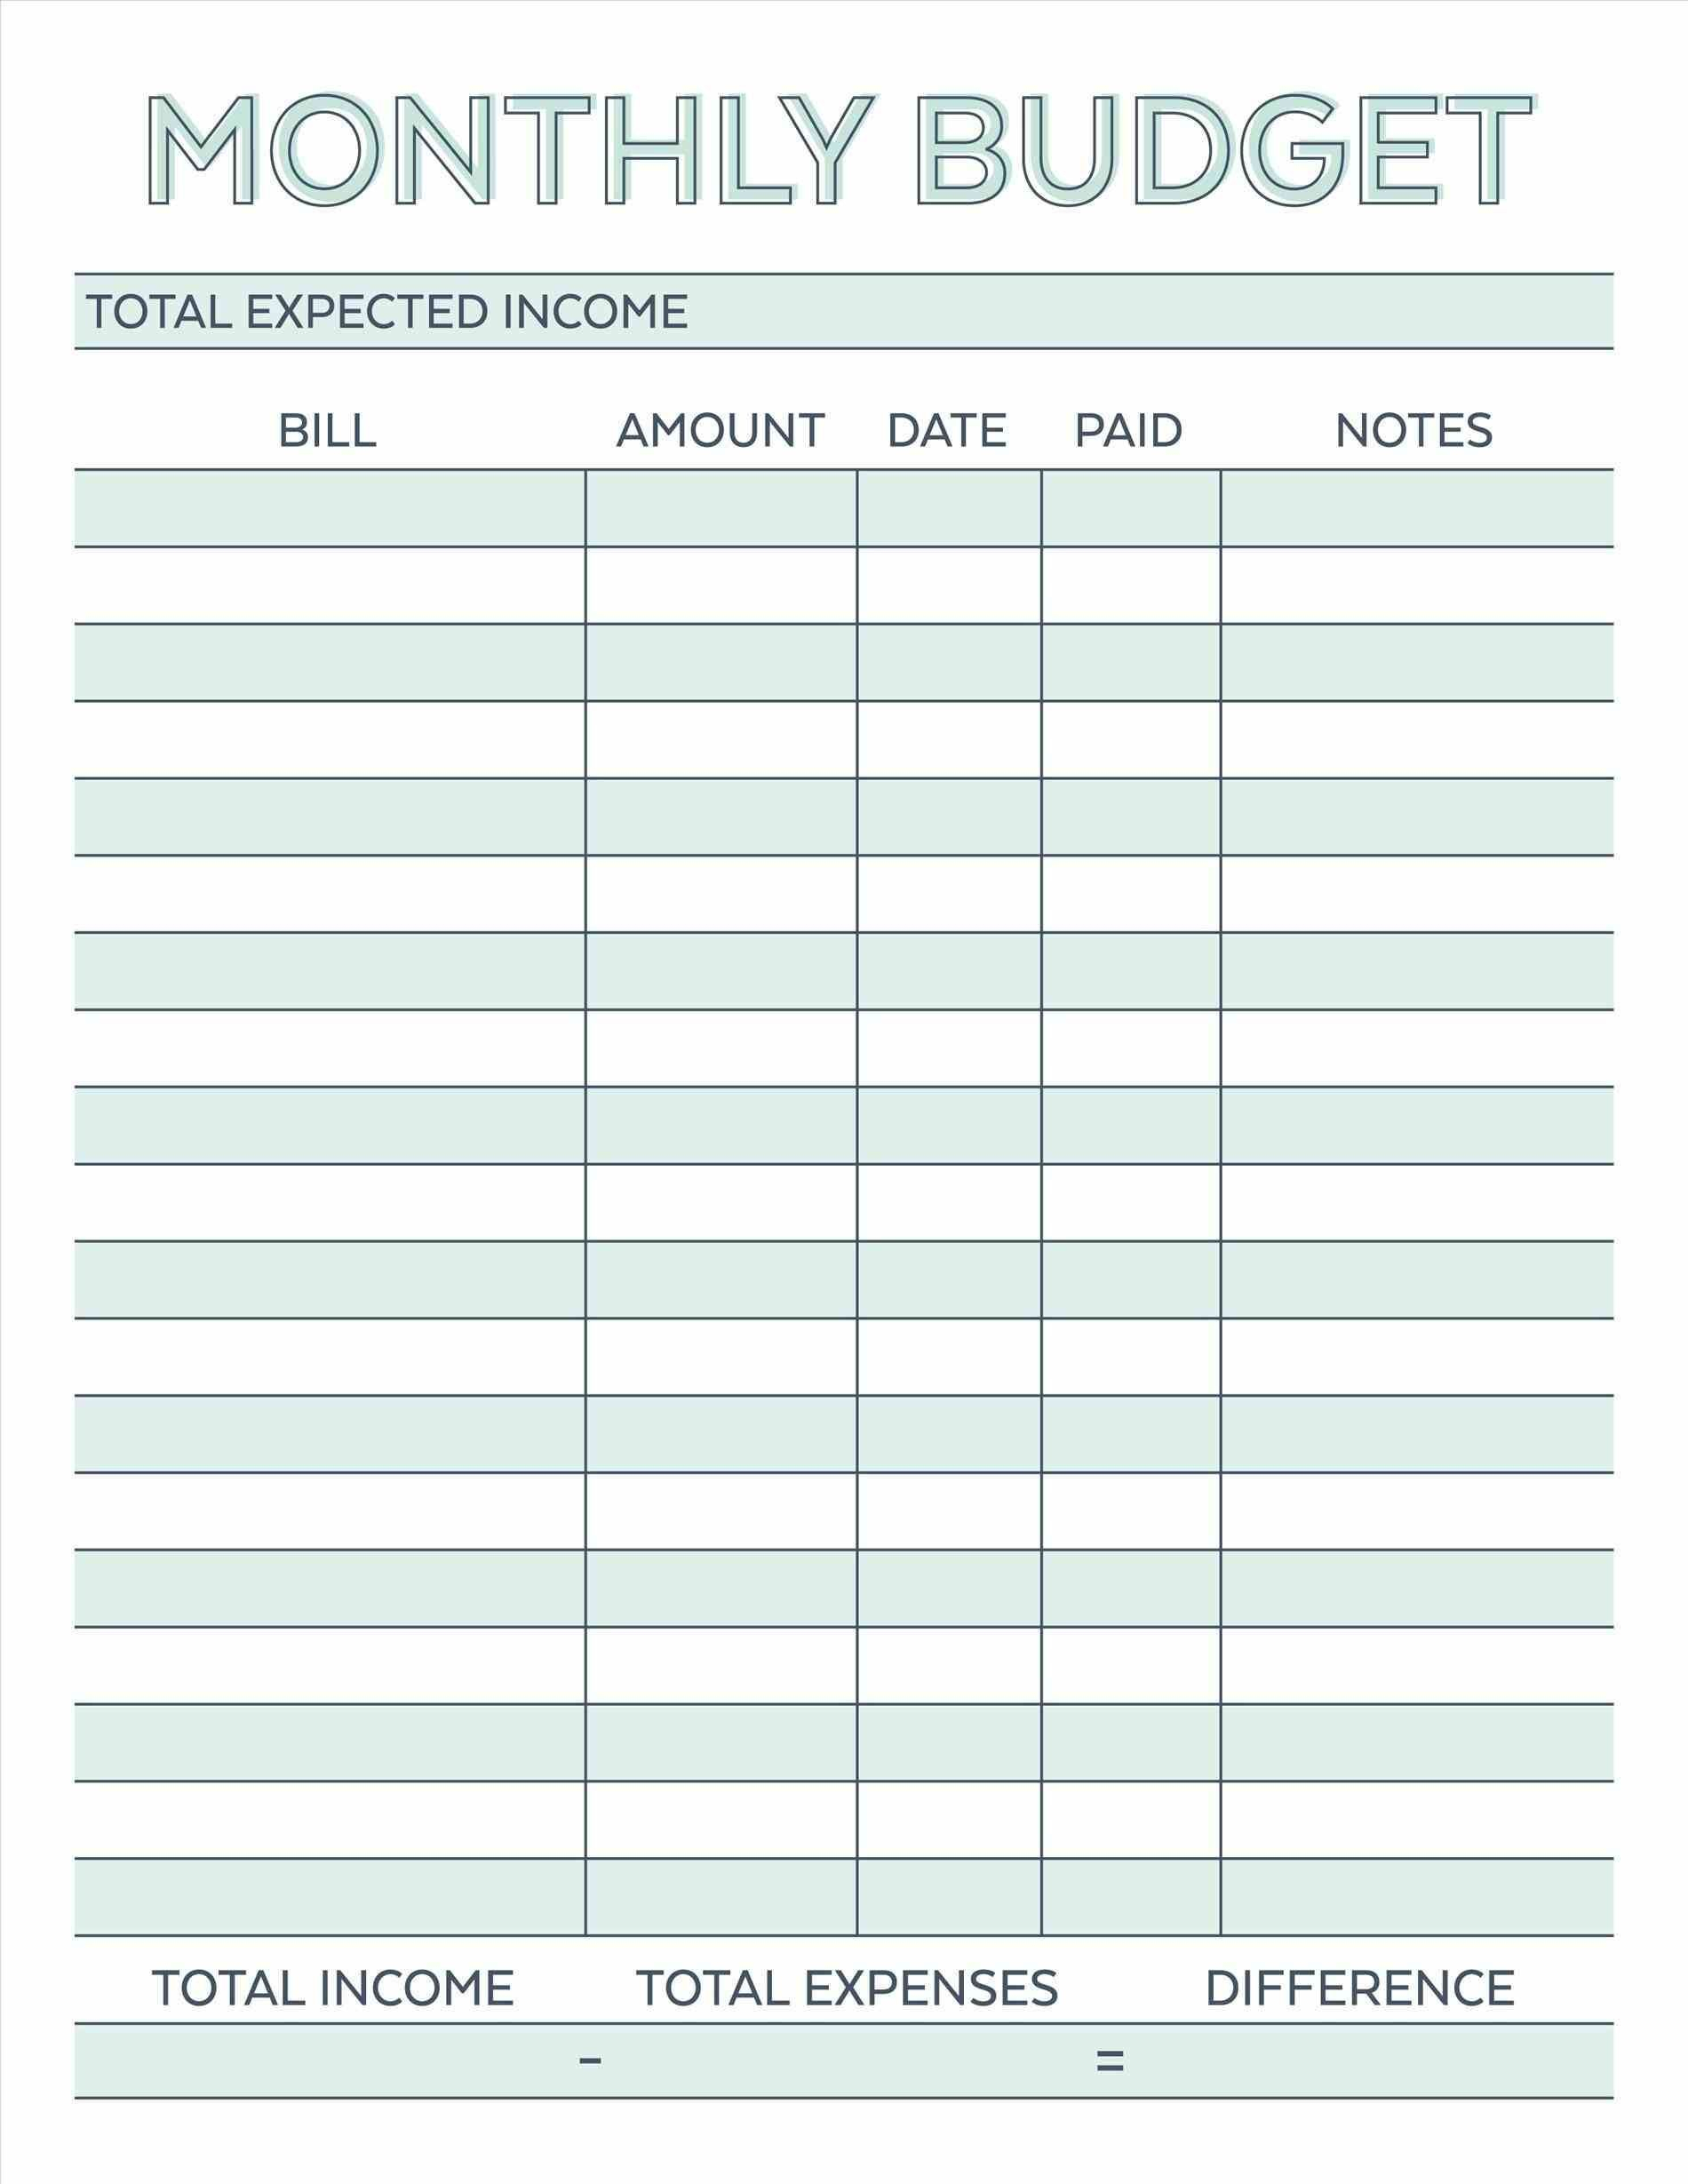 Budget Planner Planner Worksheet Monthly Bills Template Free | Budget Helper Worksheet Printable